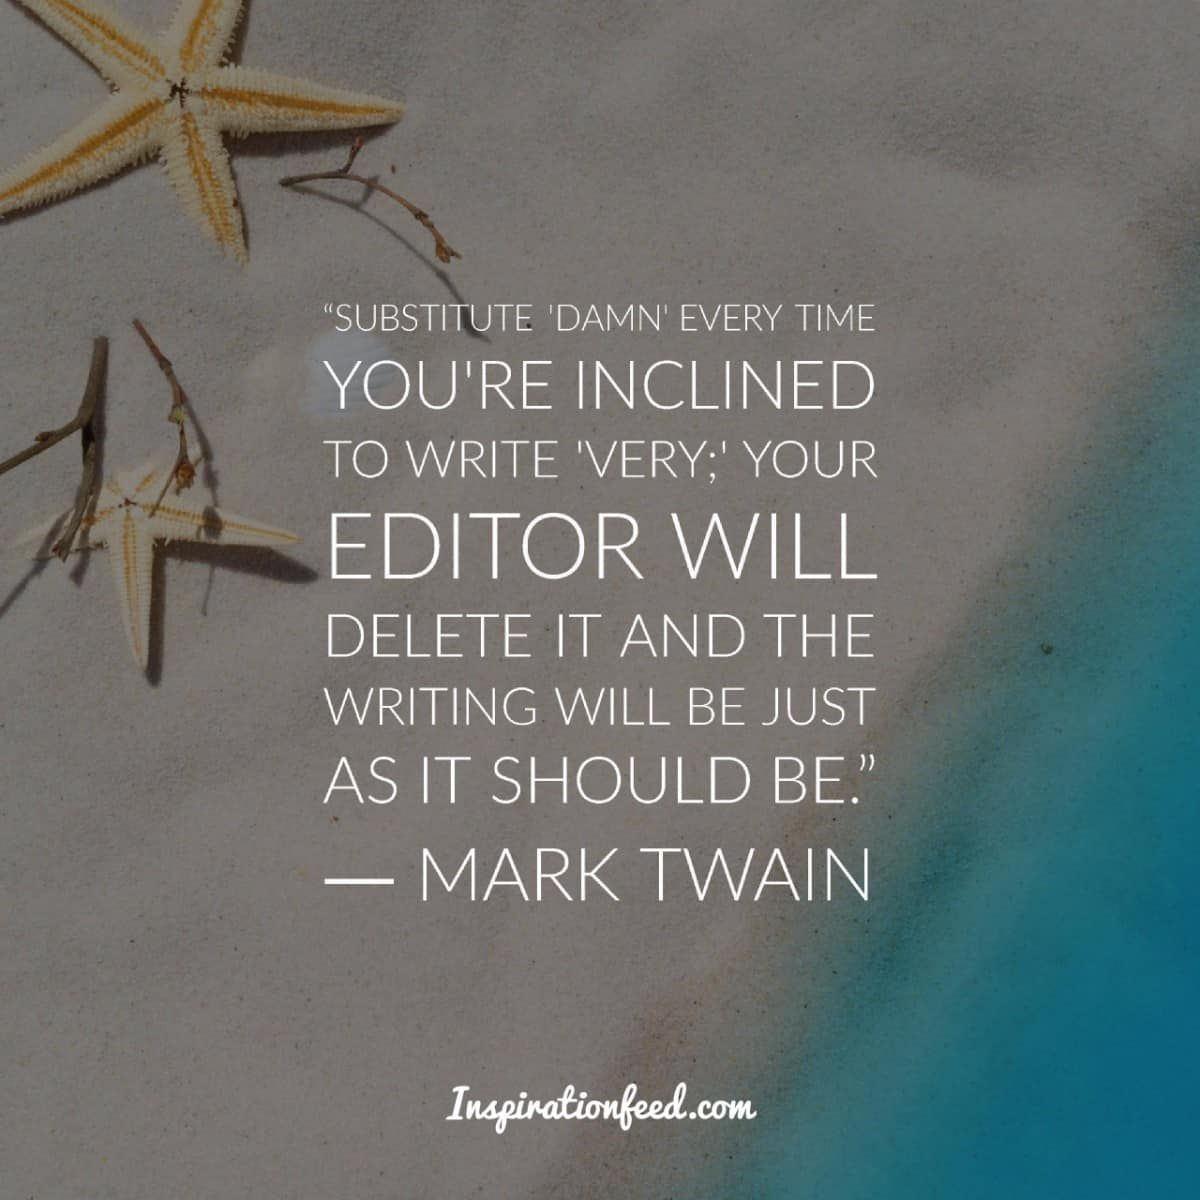 Mark Twain Quotes About Life 30 Mark Twain Quotes About Life And Writing  Mark Twain Life